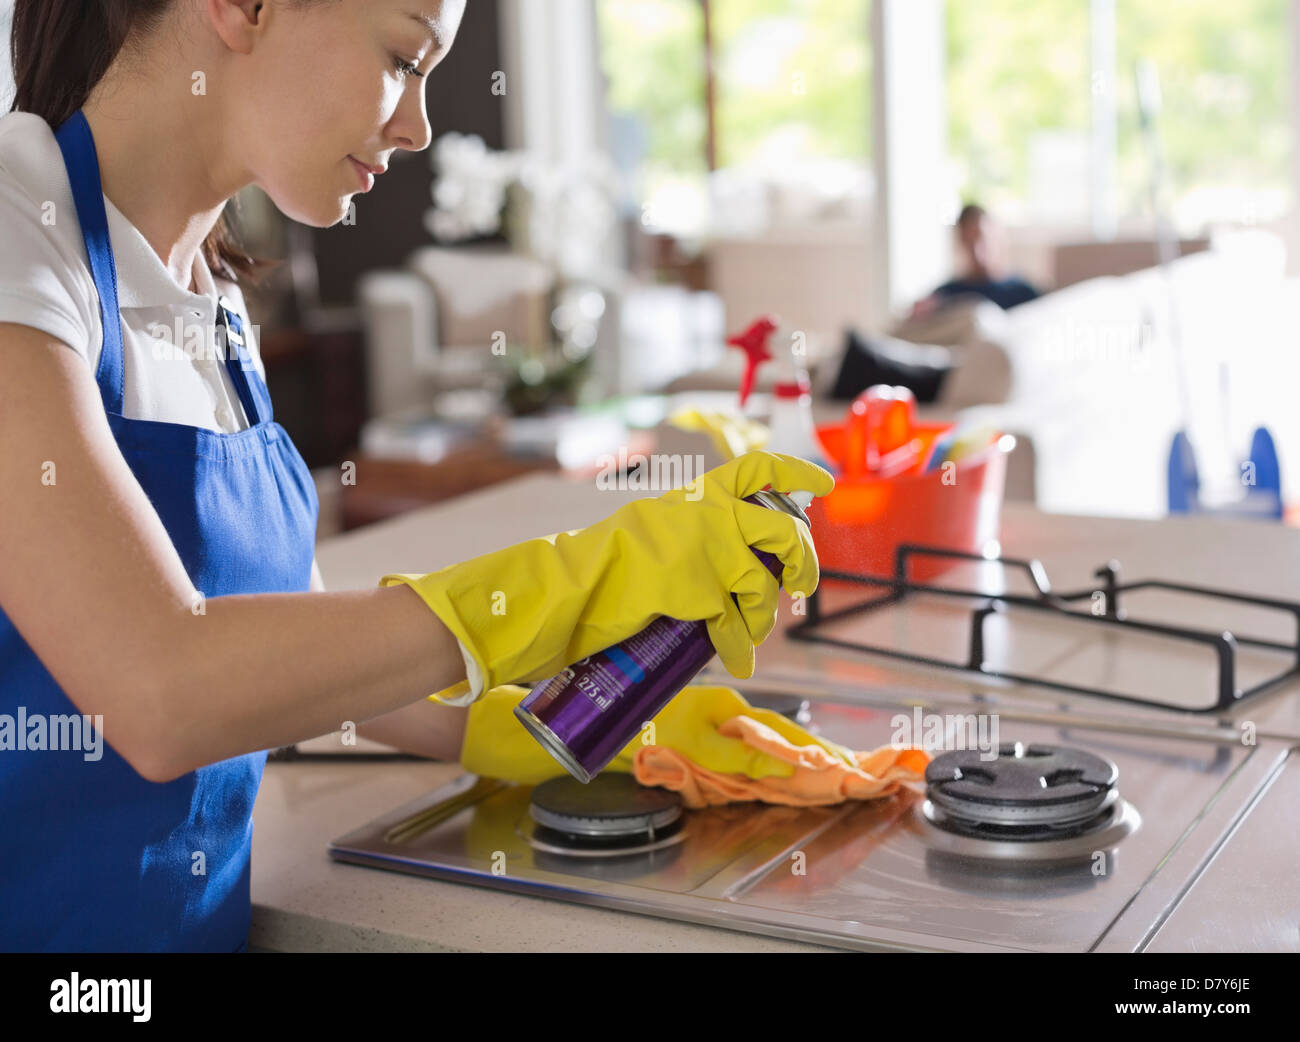 Maid cleaning stove top - Stock Image